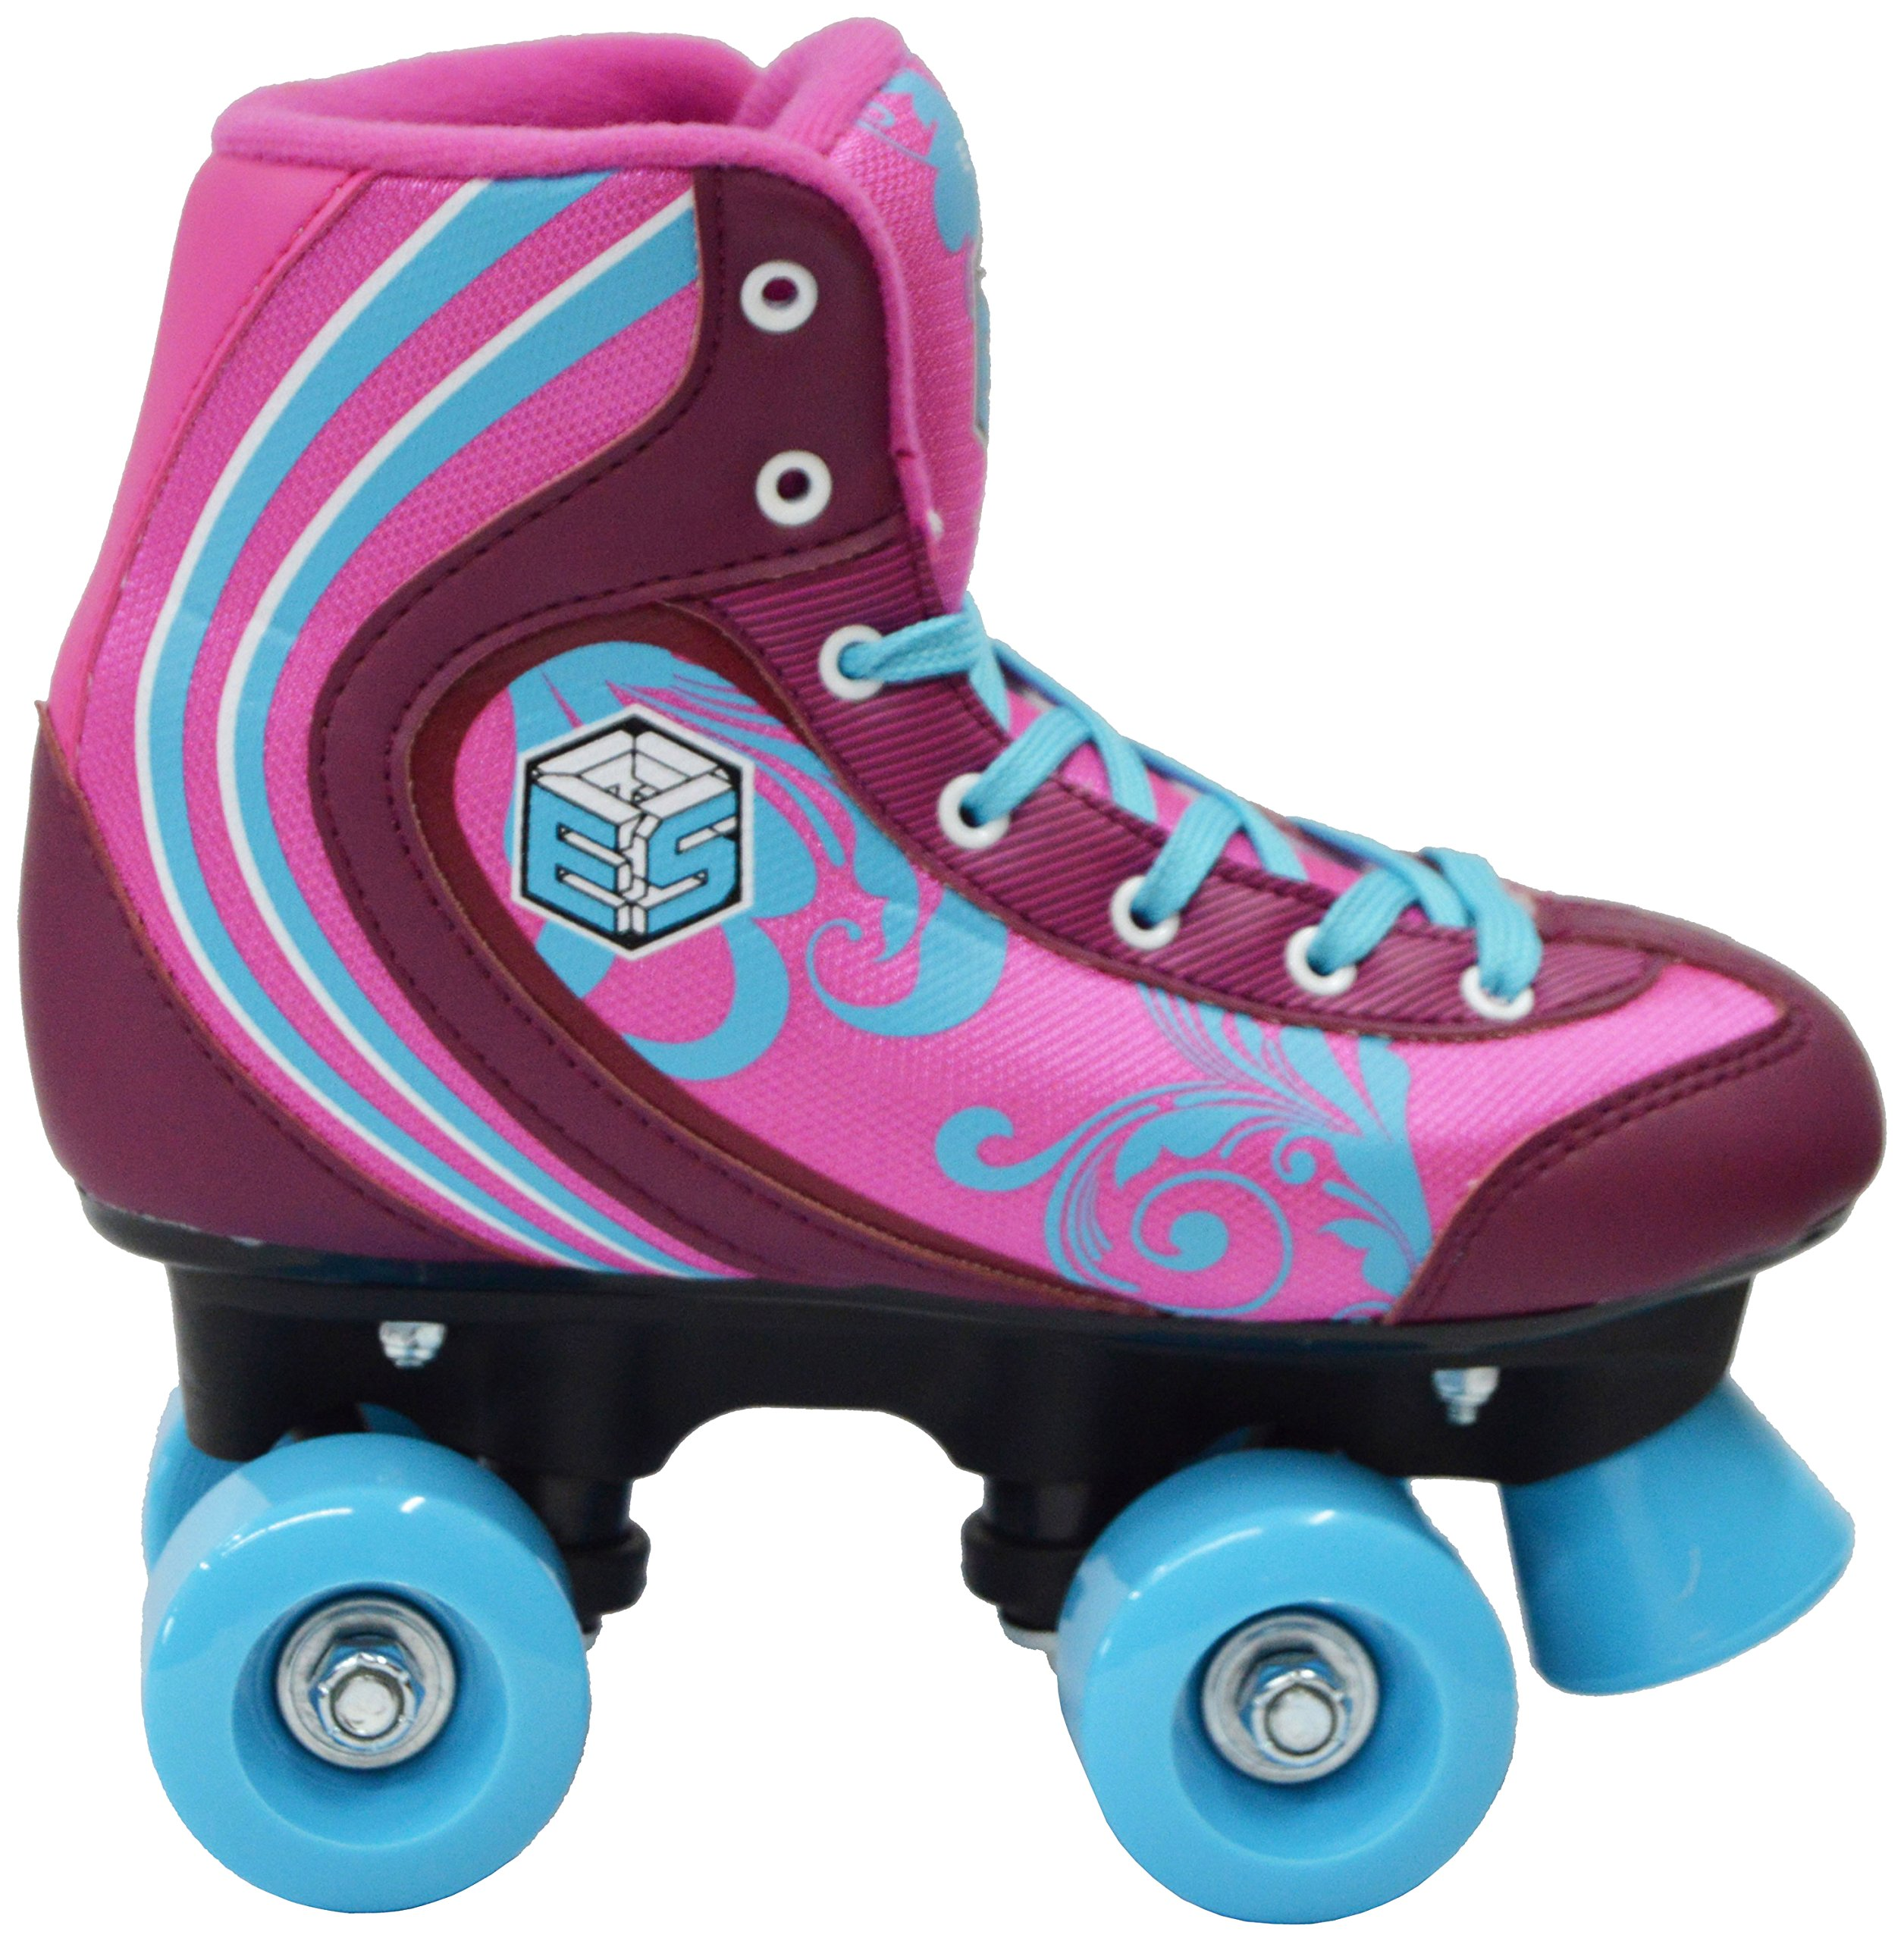 Epic Skates Cotton Candy Kids Quad Roller Skates